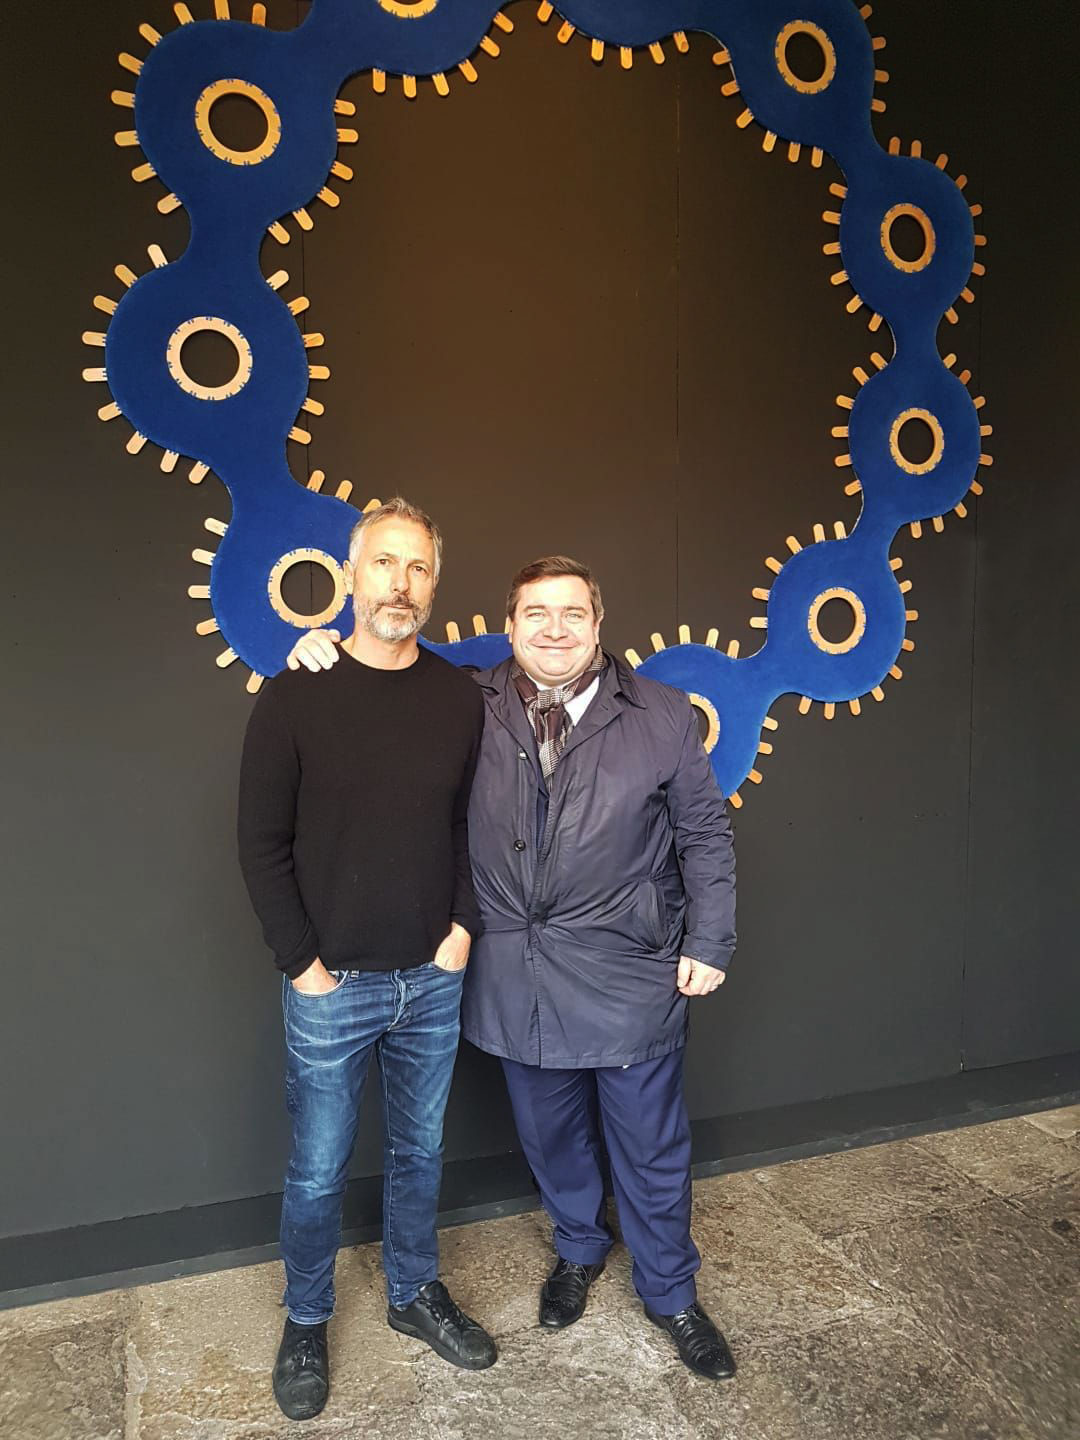 Humberto Campana and Andrea Galimberti from Nodus in front of the Collana carpet